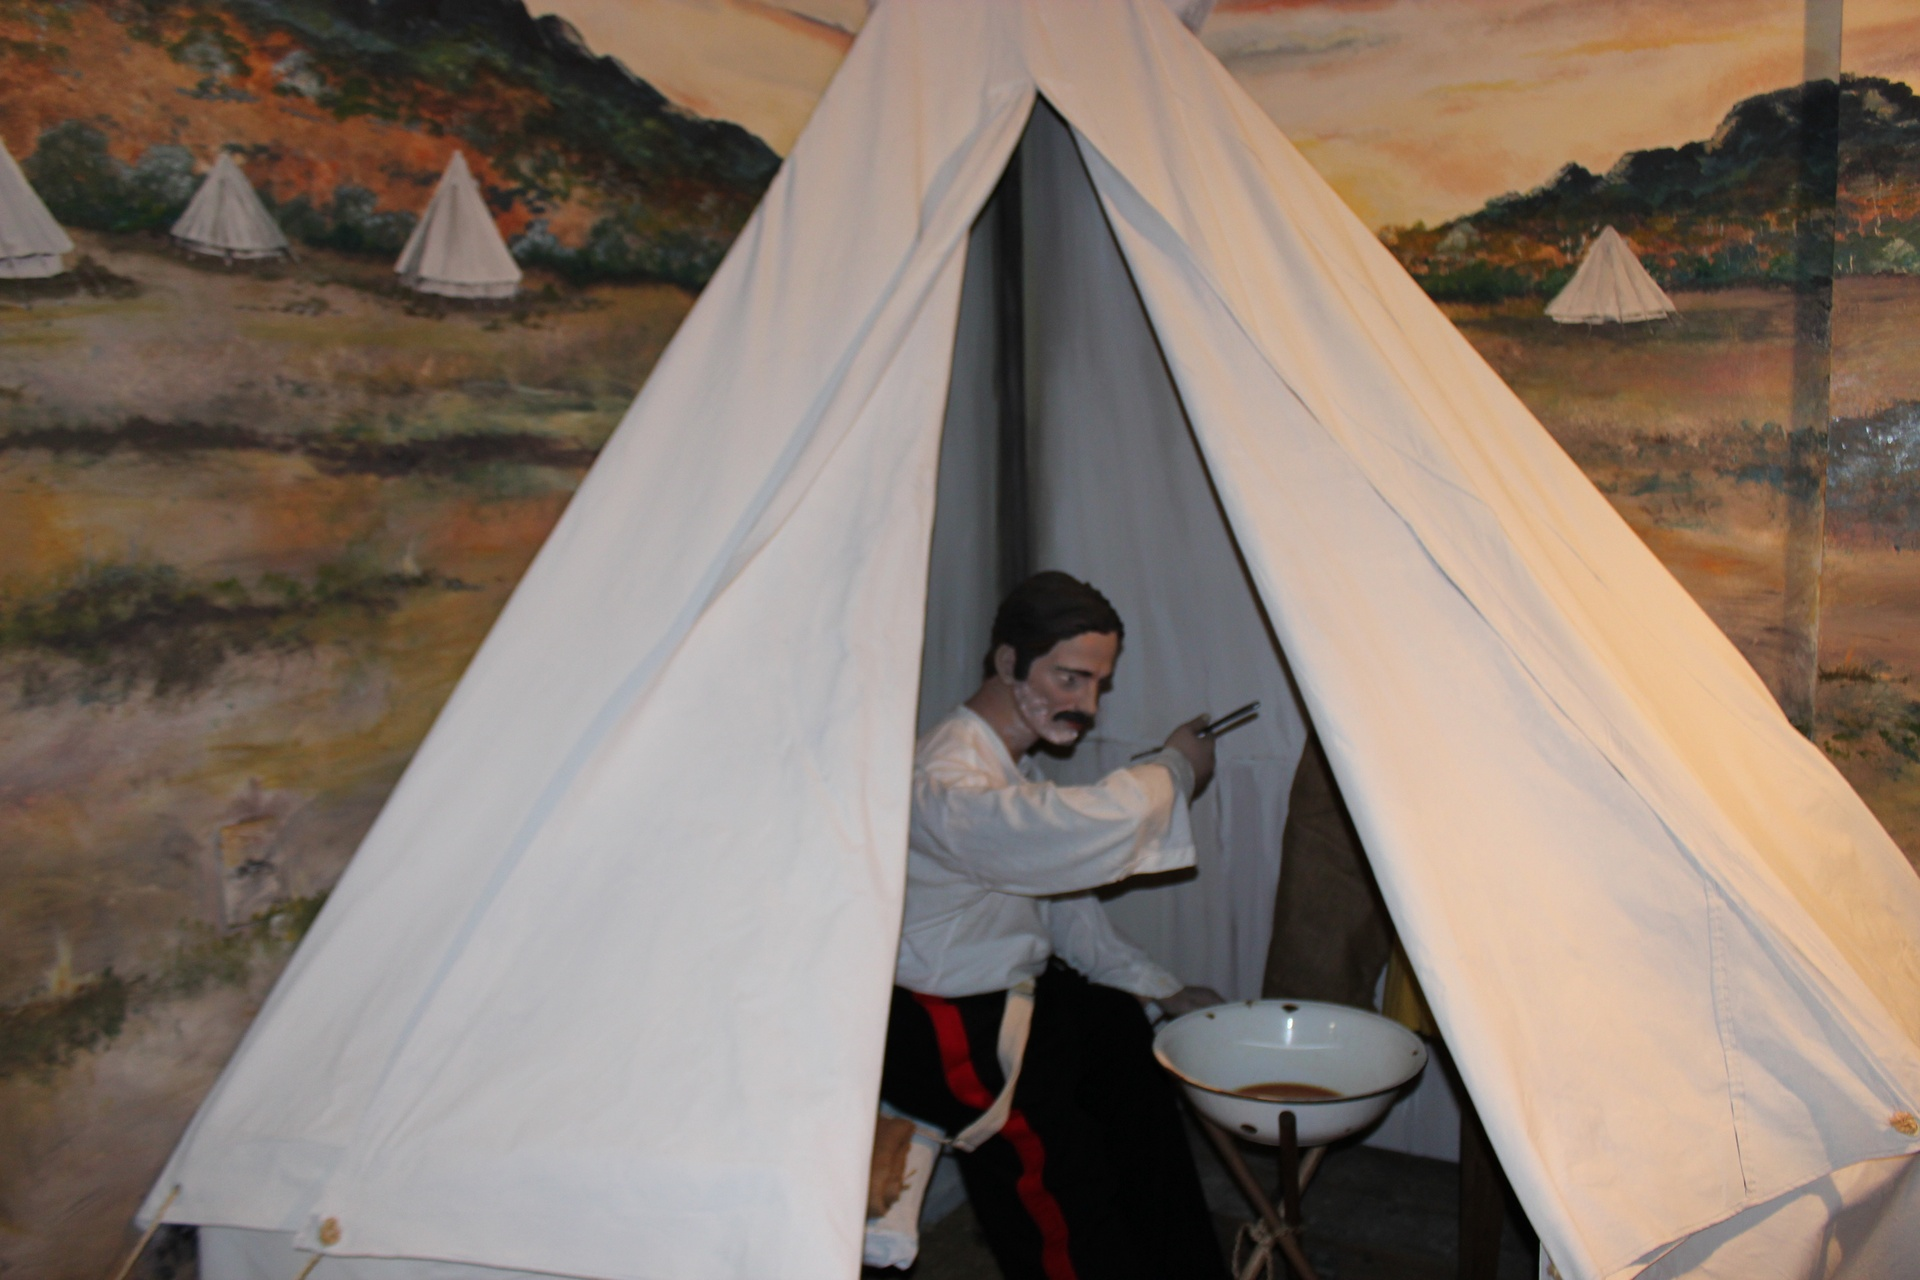 Officer's Tent